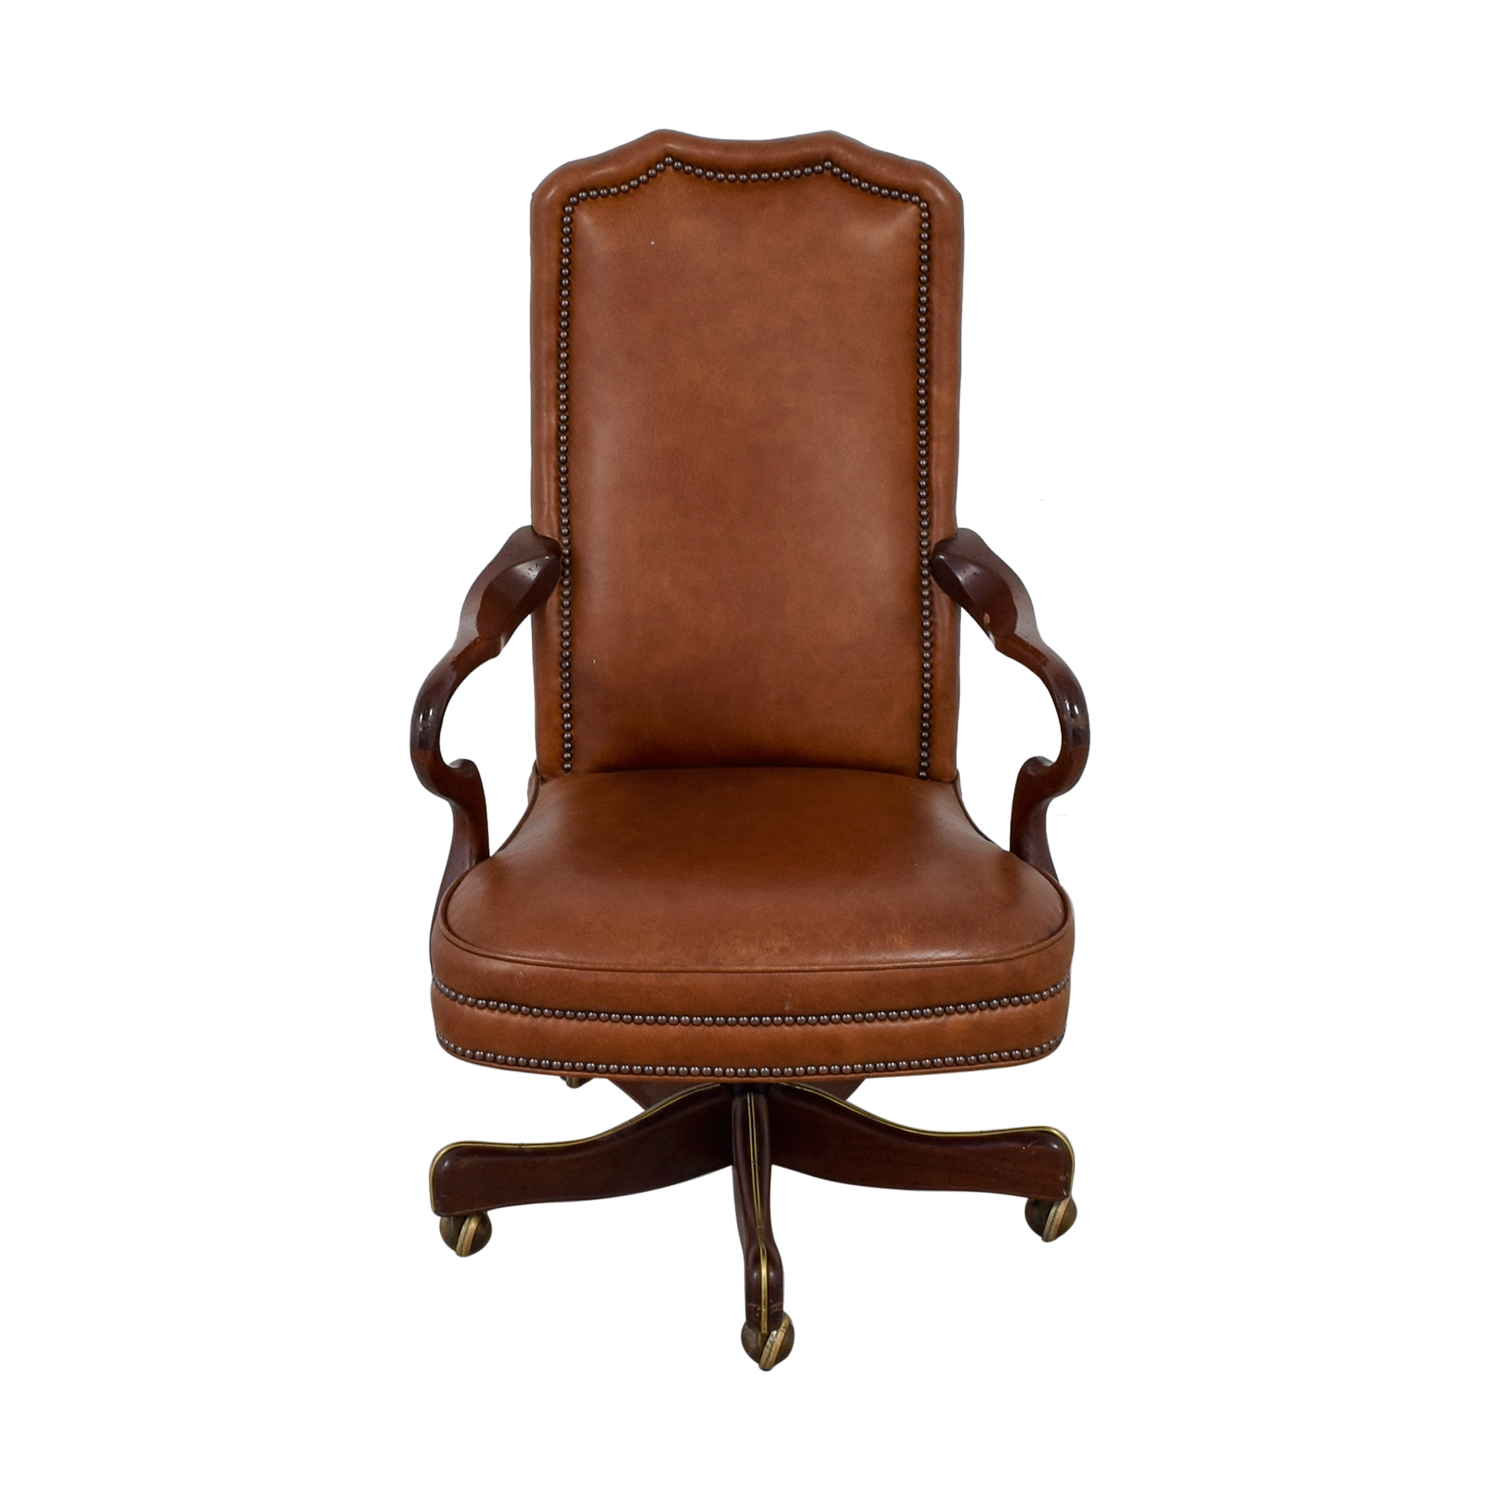 71 off charles stewart company charles stewart company brown leather desk chair chairs. Black Bedroom Furniture Sets. Home Design Ideas